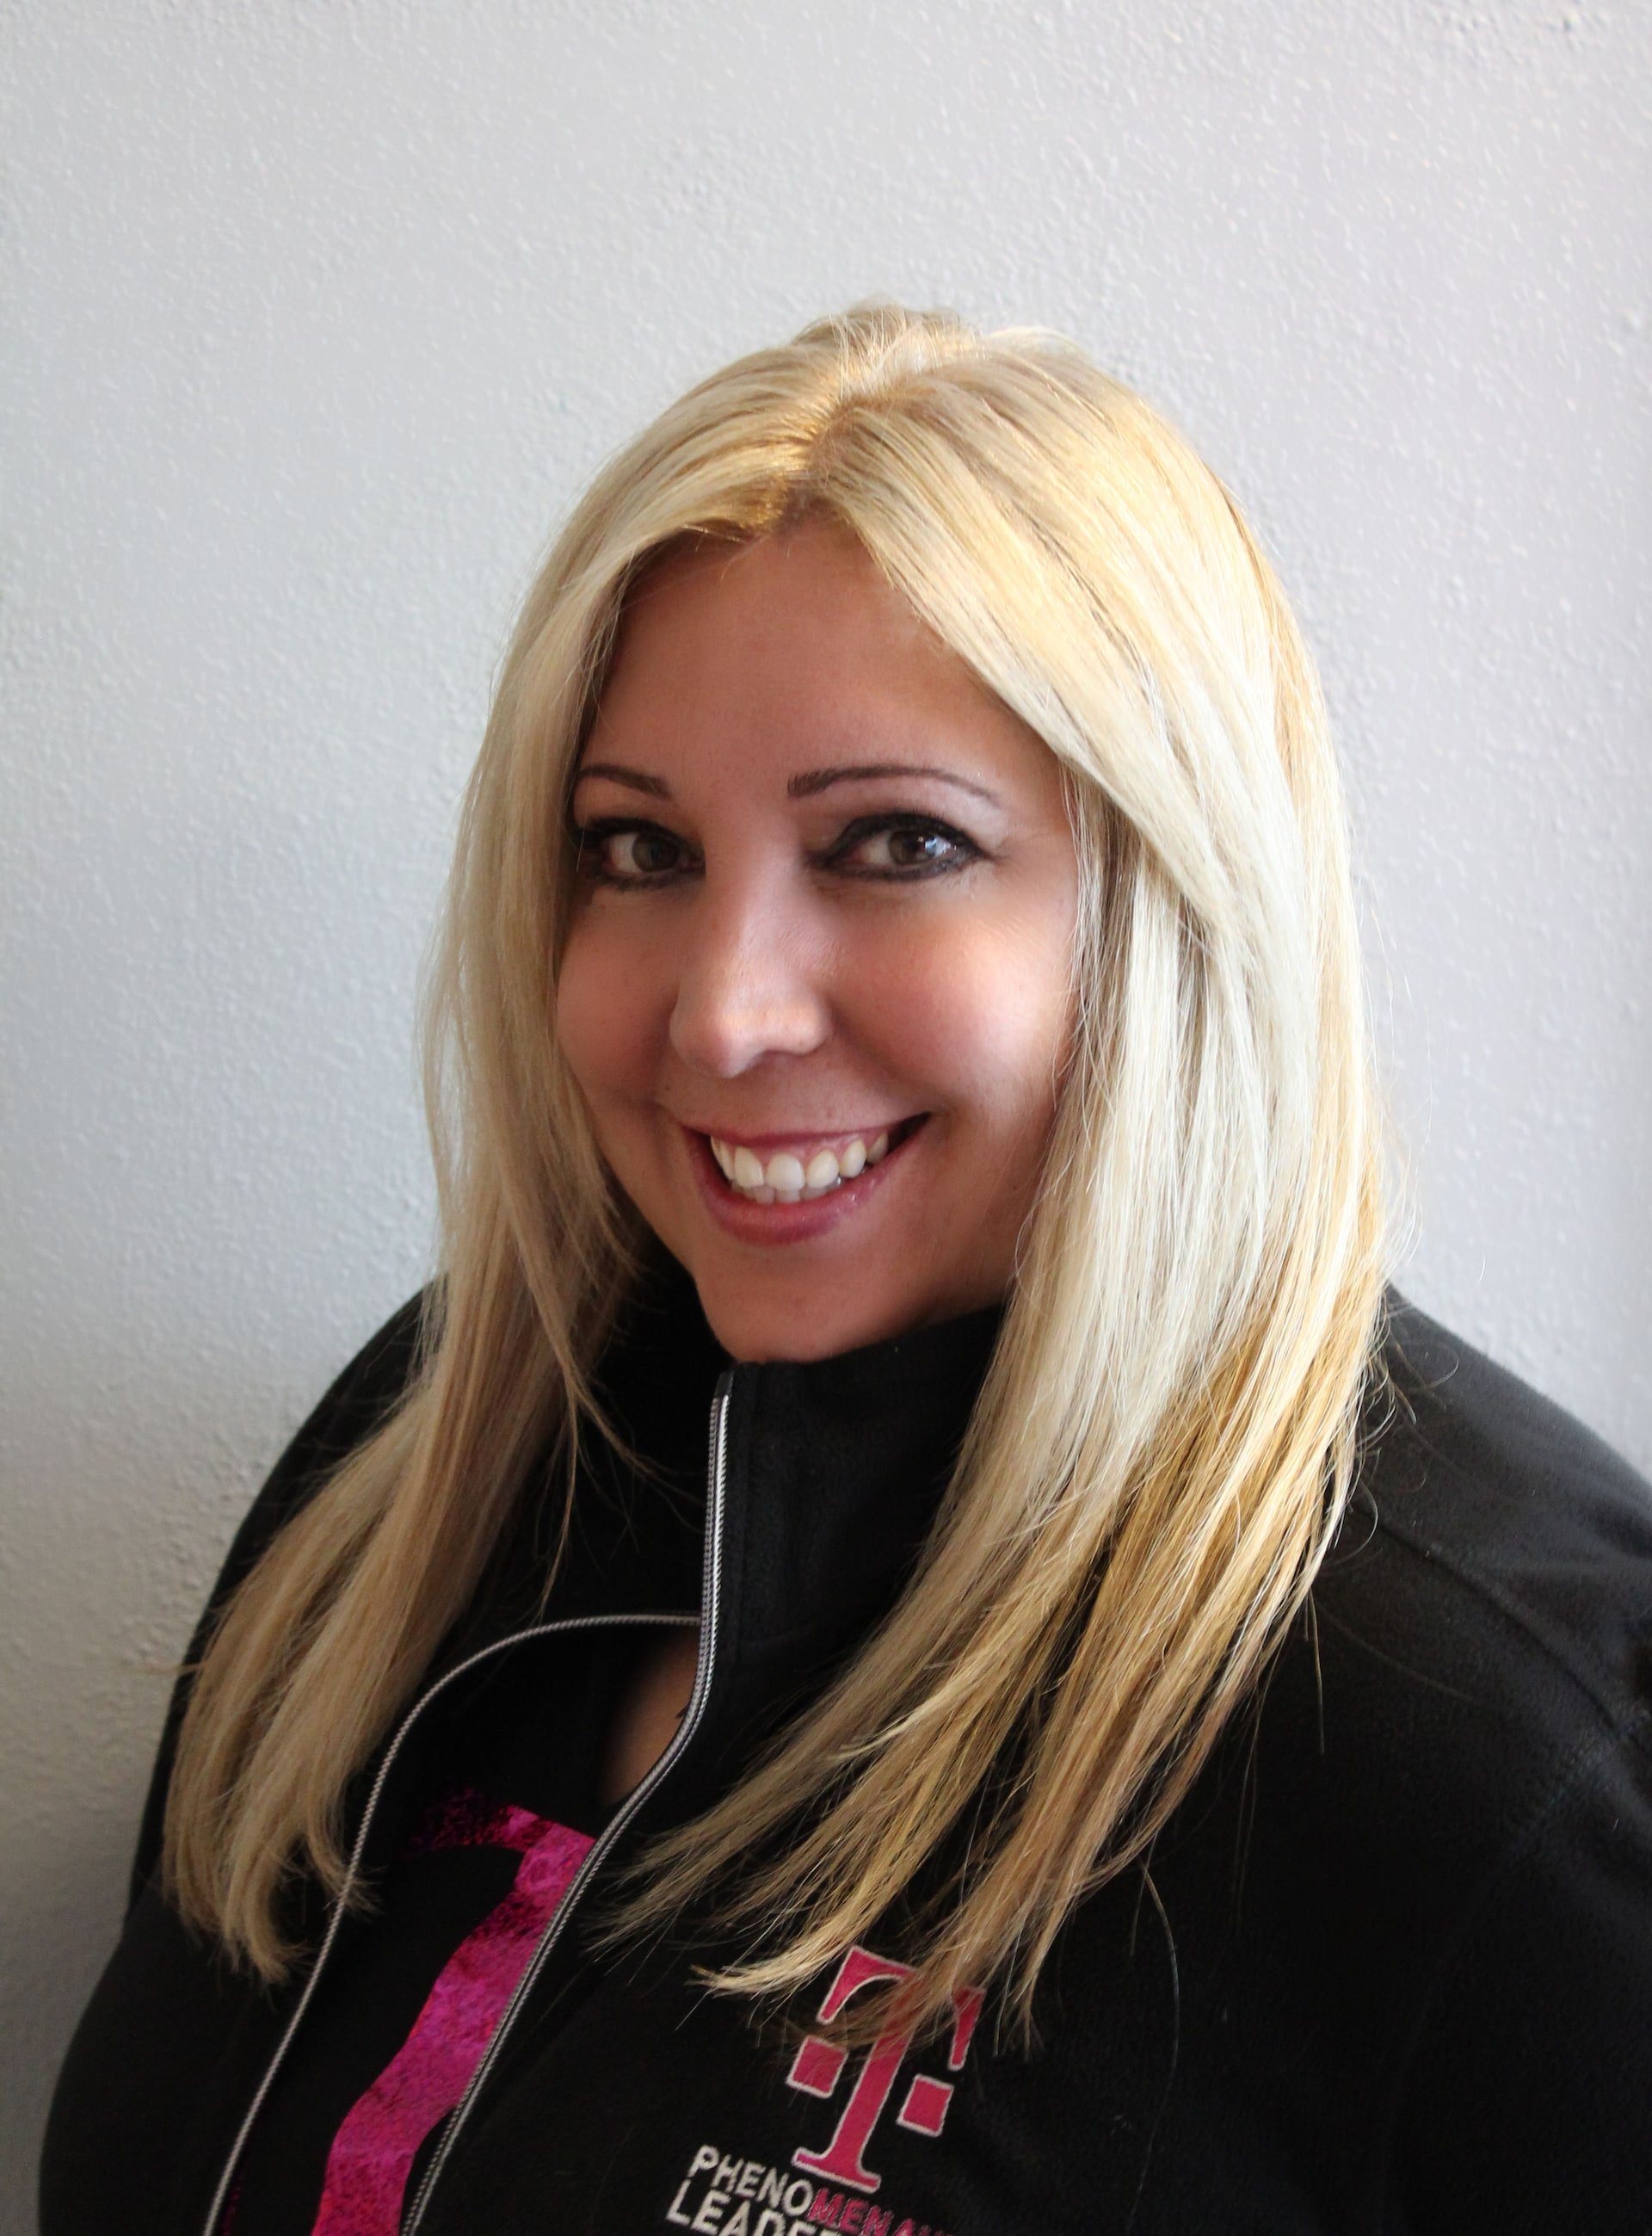 Proof that T-Mobile is truly a Great Place to Work? Karen M. Viola has been with the company for over 20 years.